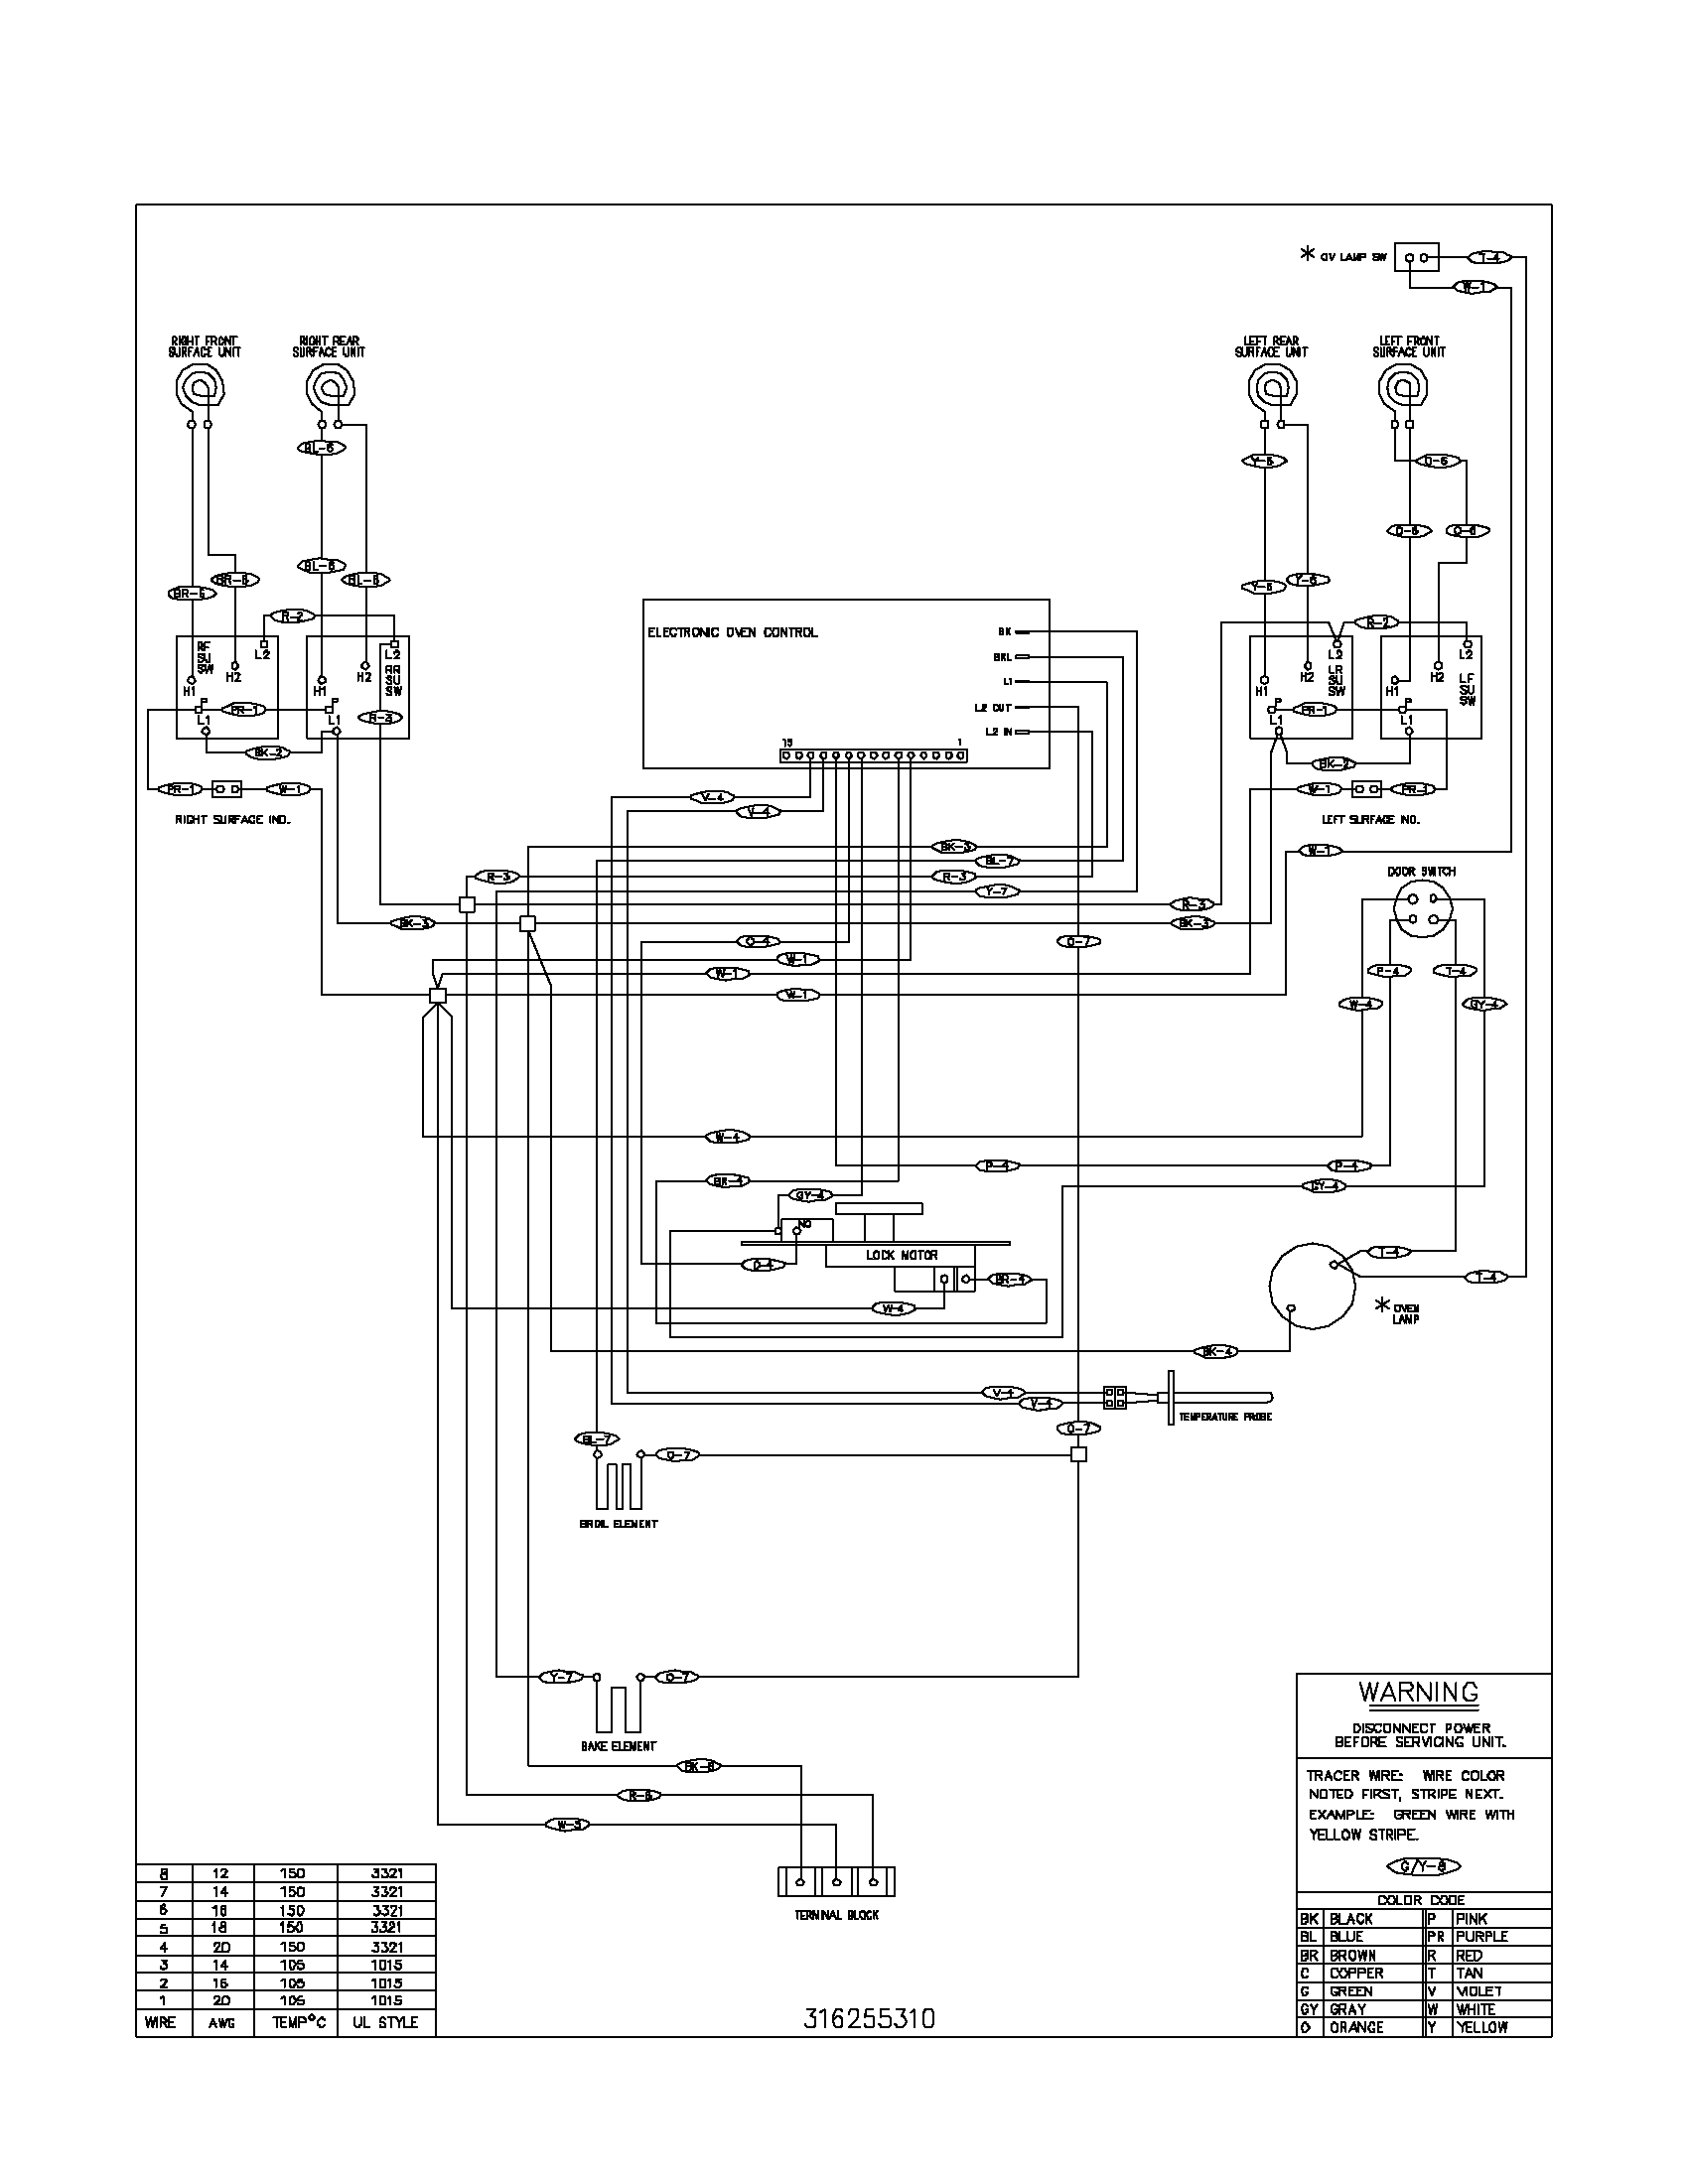 wiring diagrams for ge oven timers electric range wiring diagram electric wiring diagrams online wiring diagram for electric range the wiring diagram